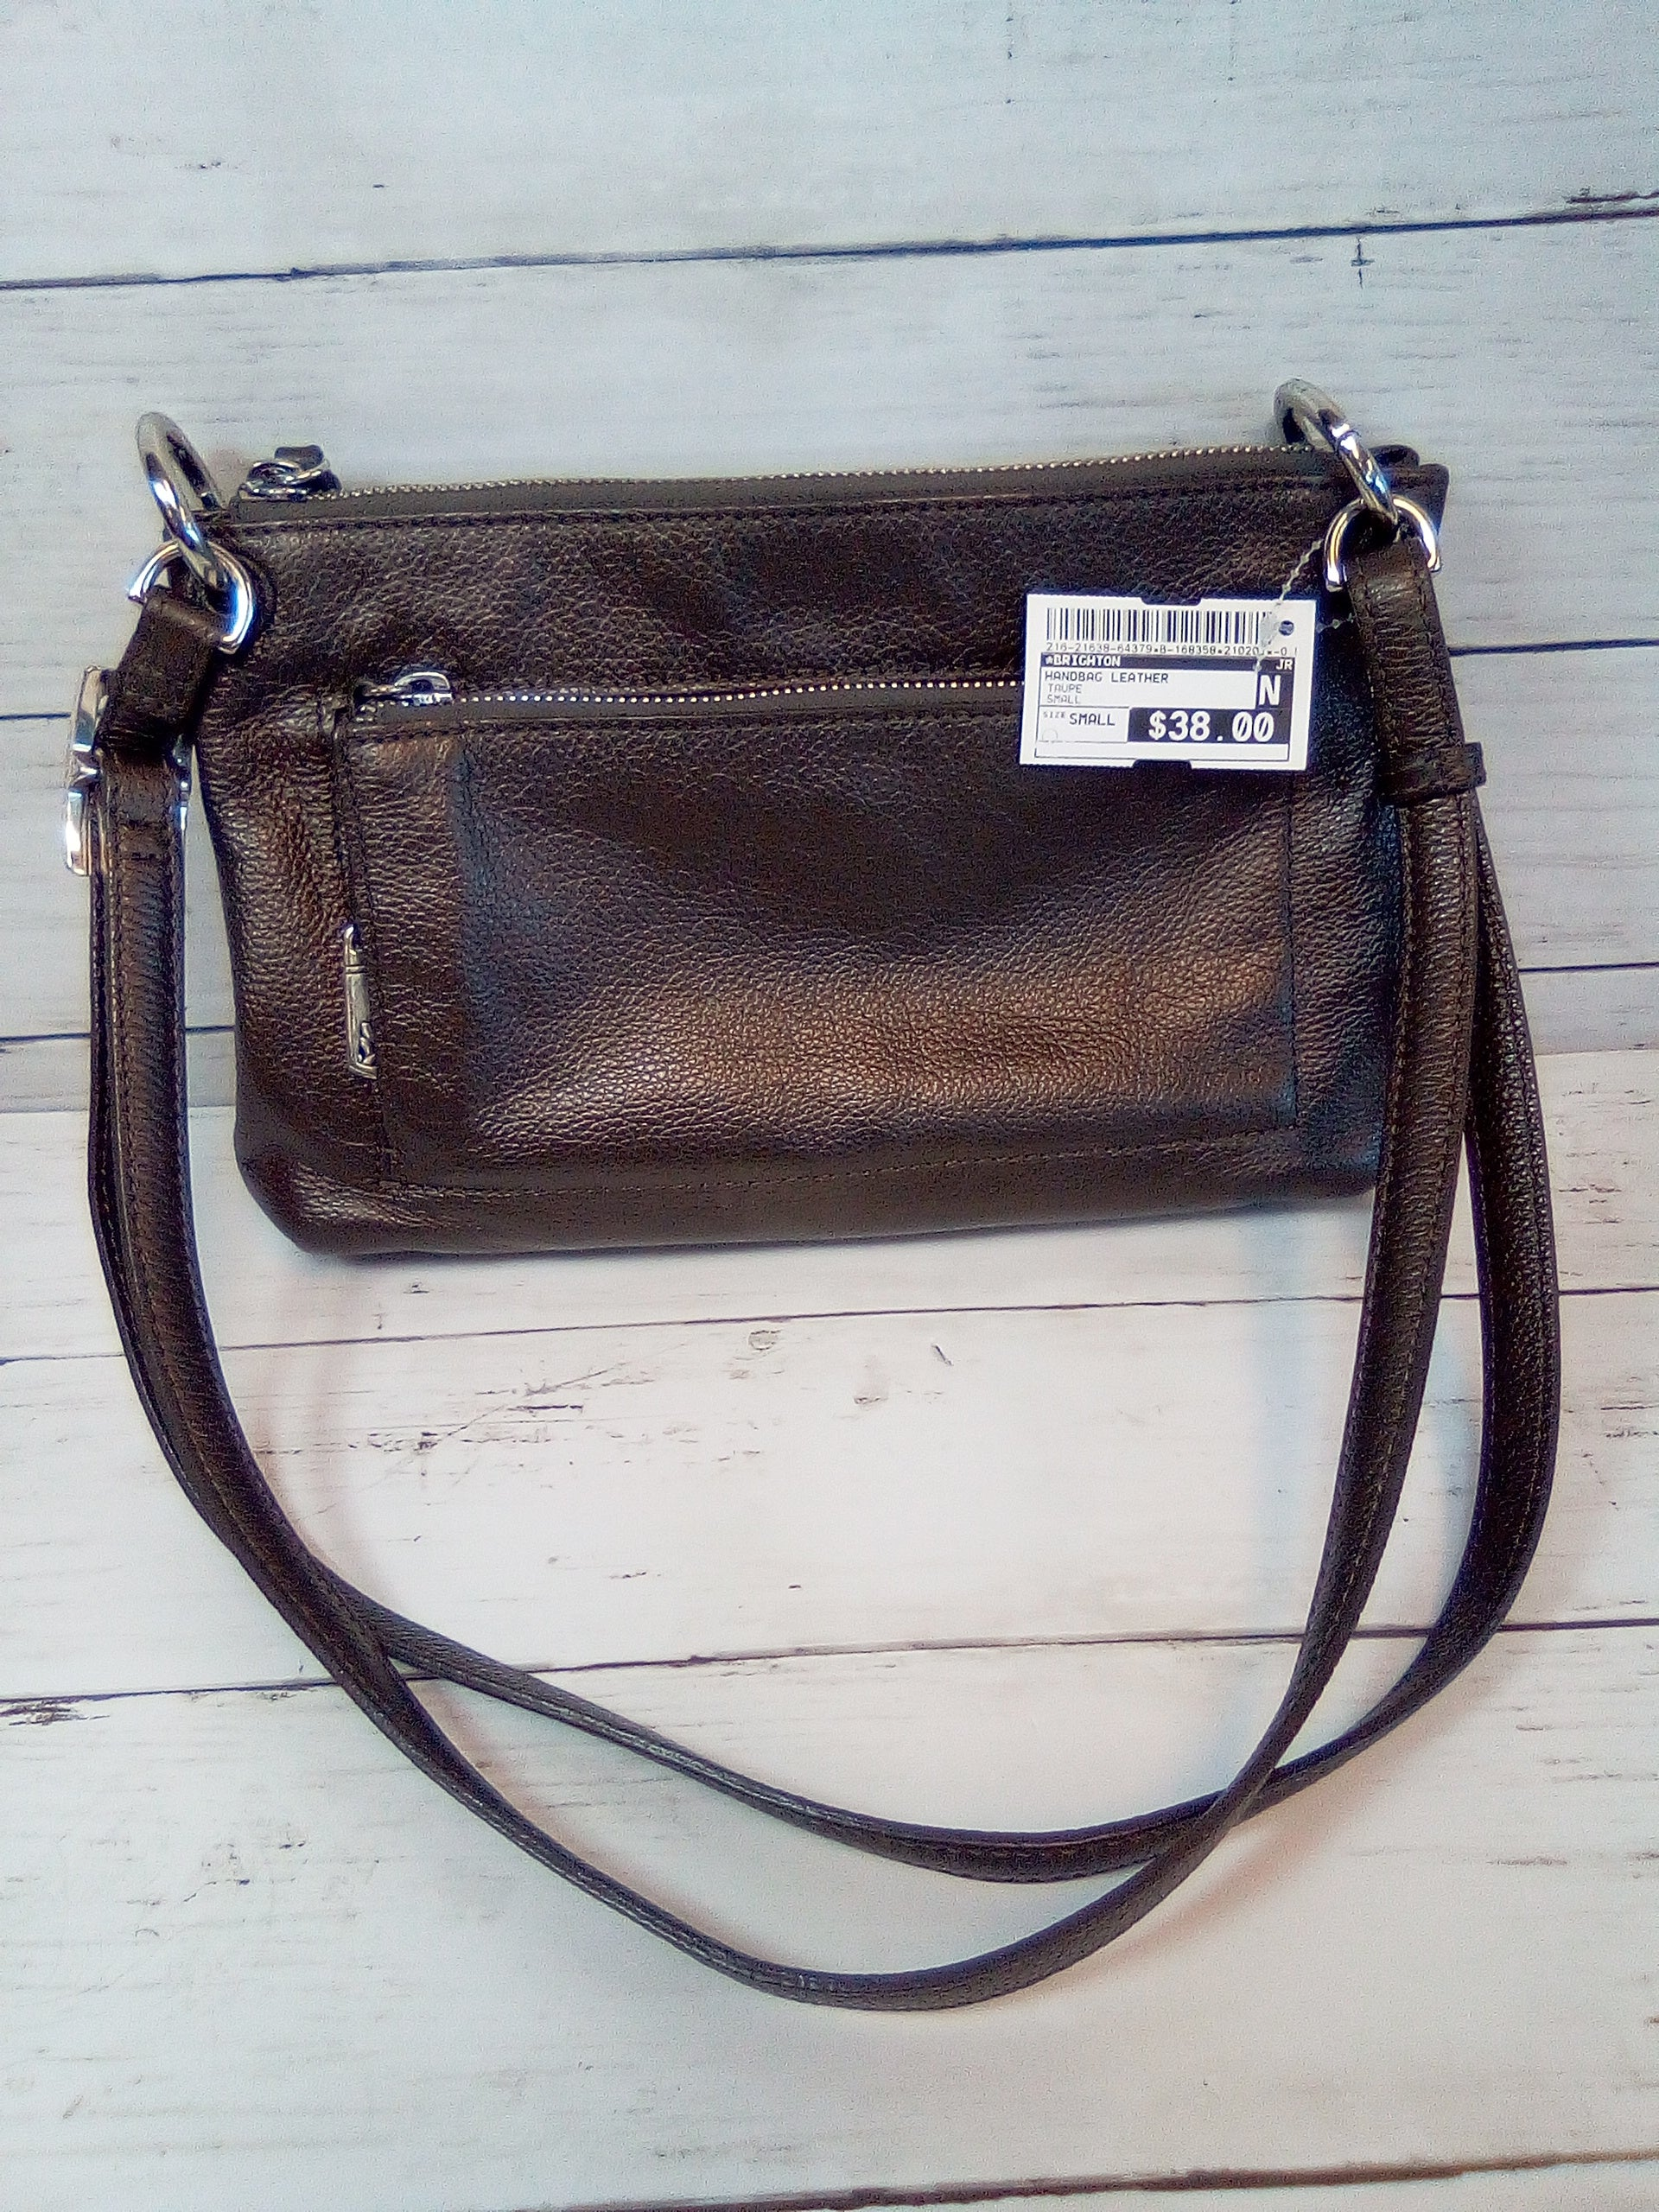 Primary Photo - BRAND: BRIGHTON <BR>STYLE: HANDBAG LEATHER <BR>COLOR: TAUPE <BR>SIZE: SMALL <BR>SKU: 216-21638-64379